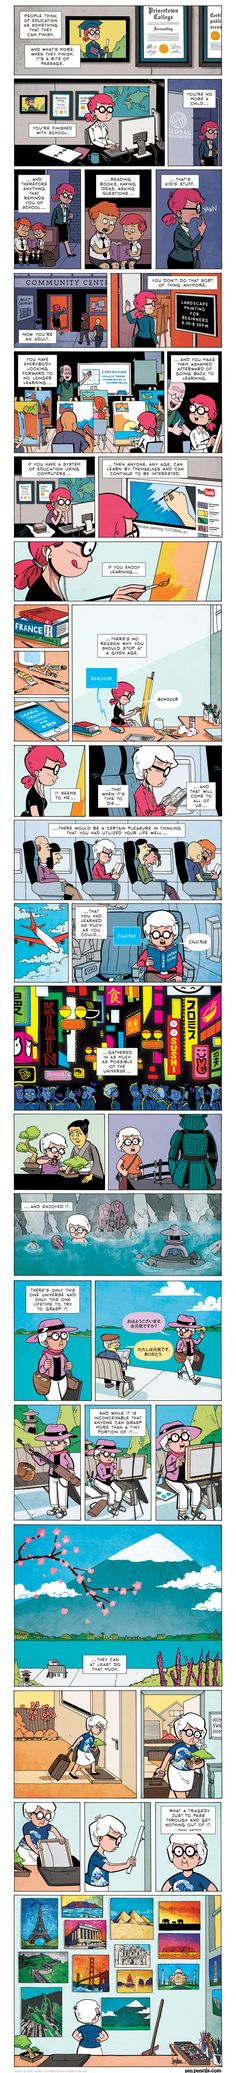 Isaac Asimov quote - as illustrated by Zen Pencils